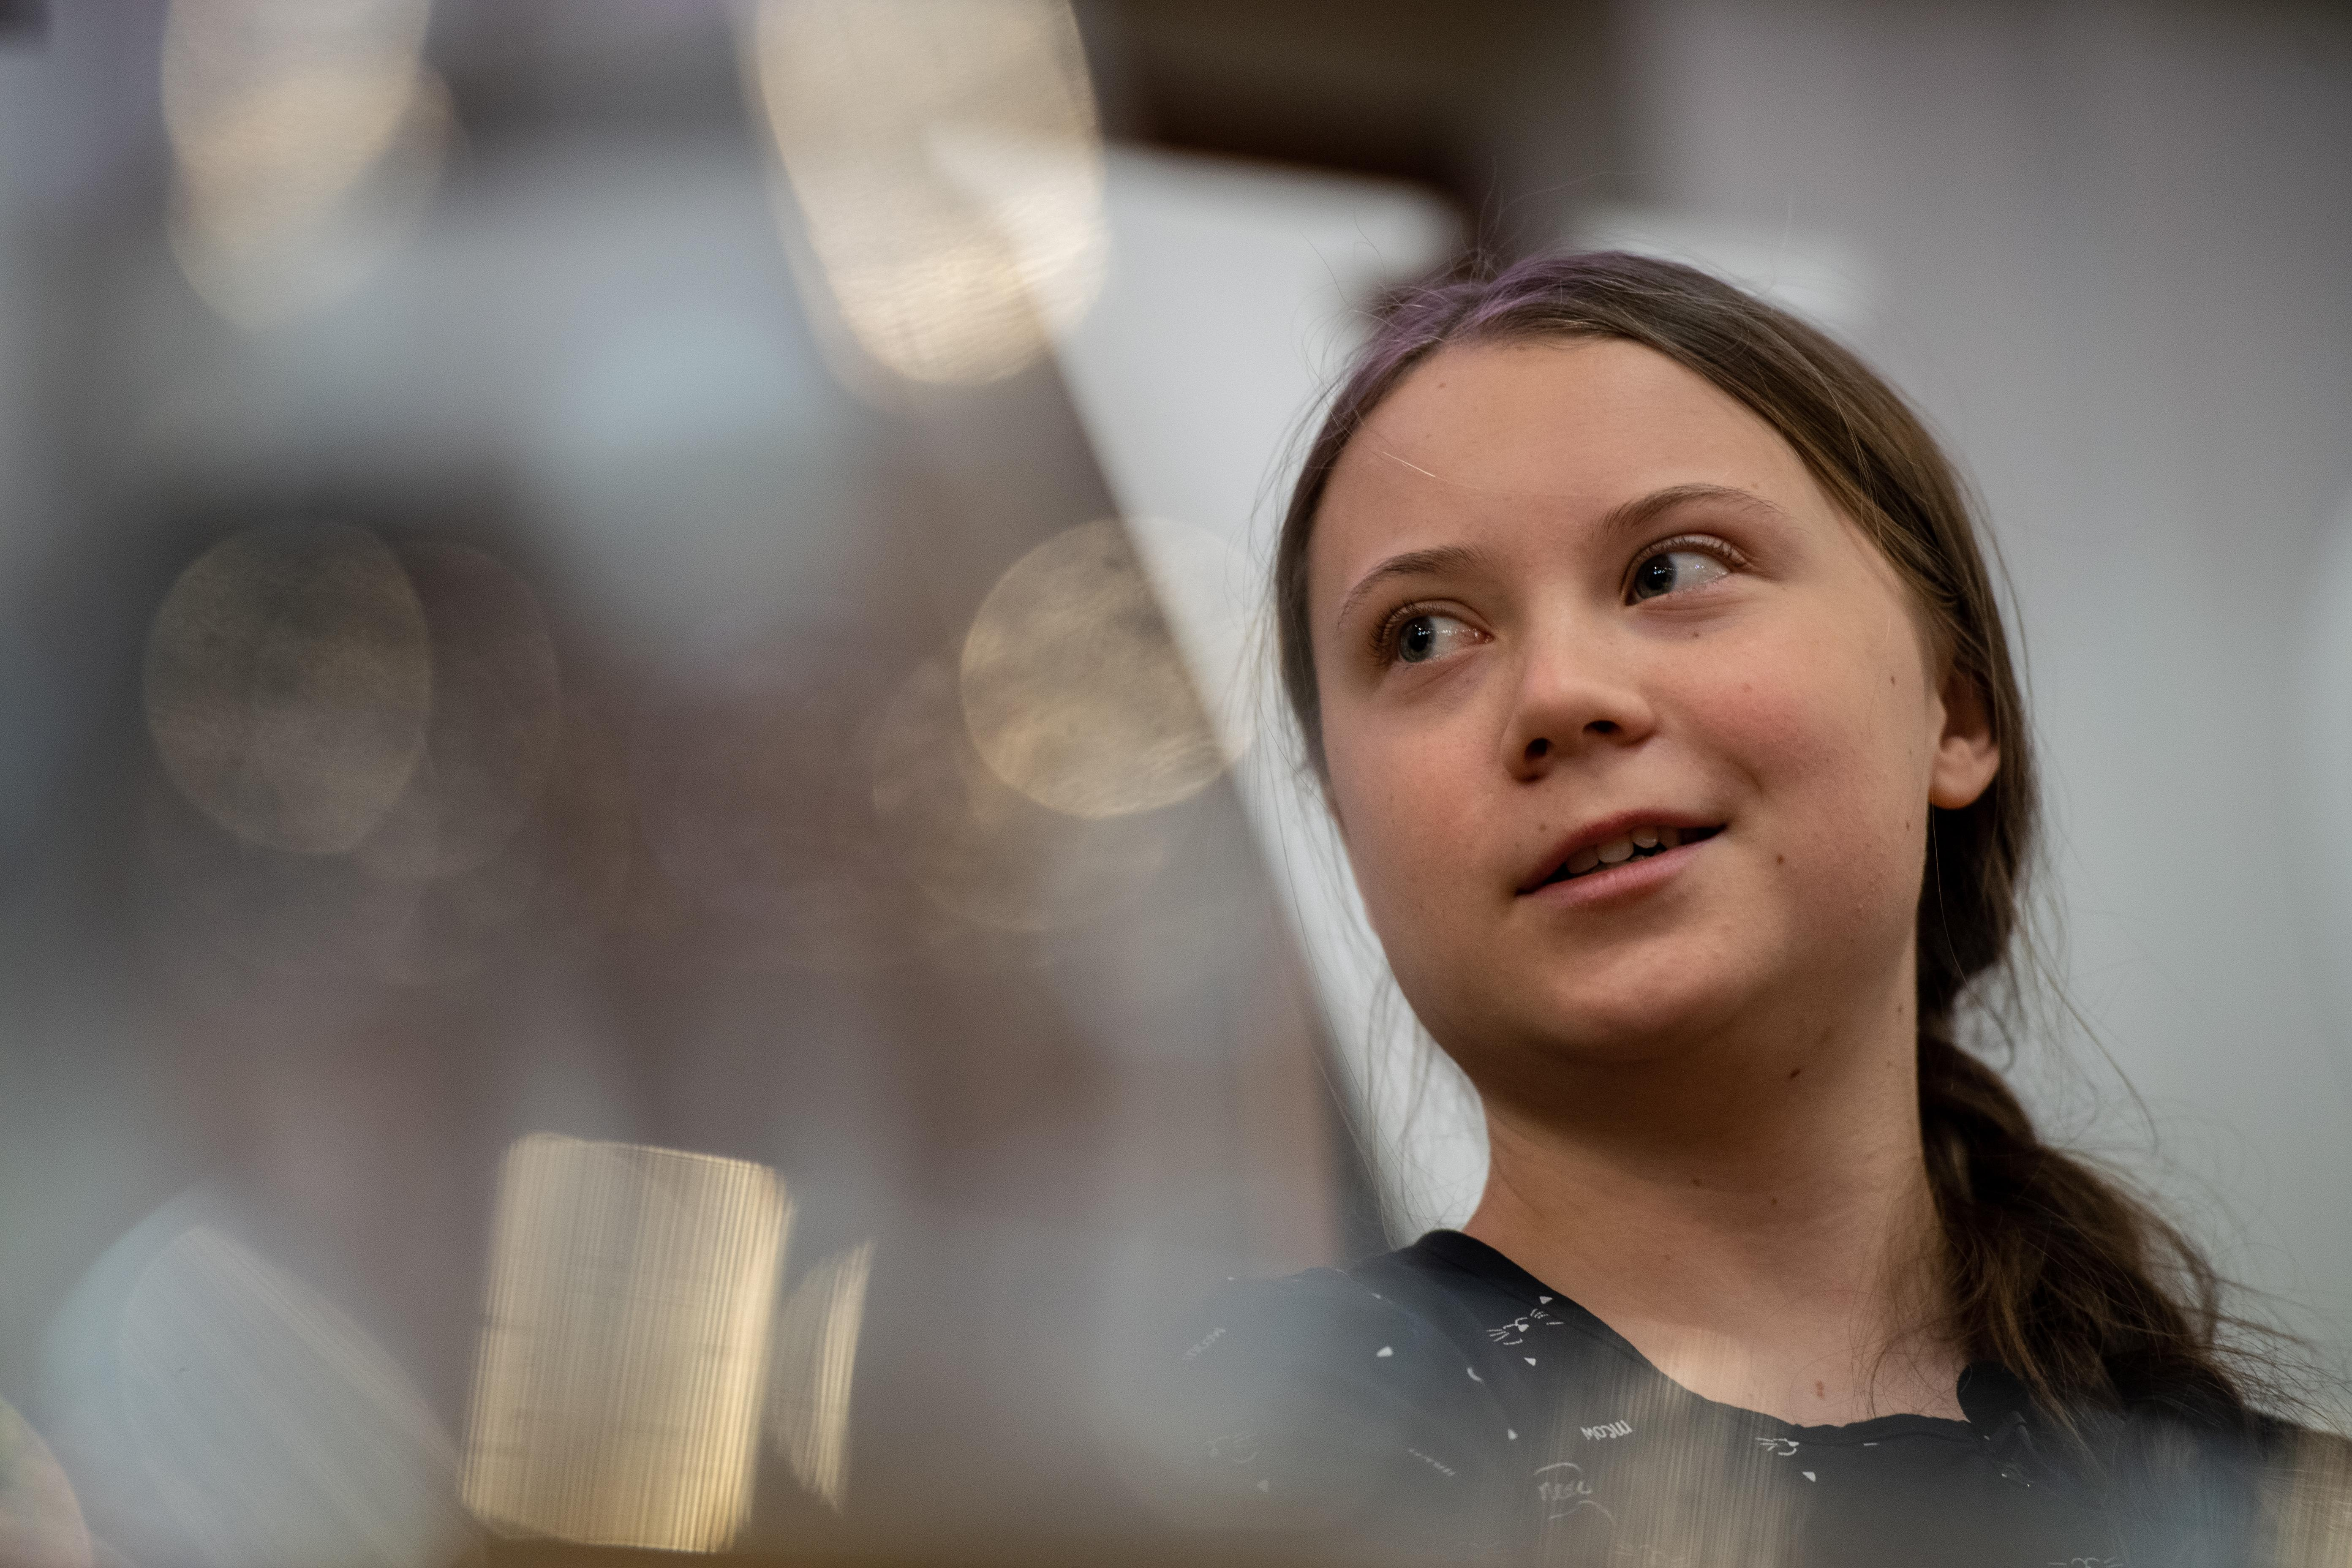 Greta Thunberg speaks at an event with other climate activists in London, England. [Photo: Getty]